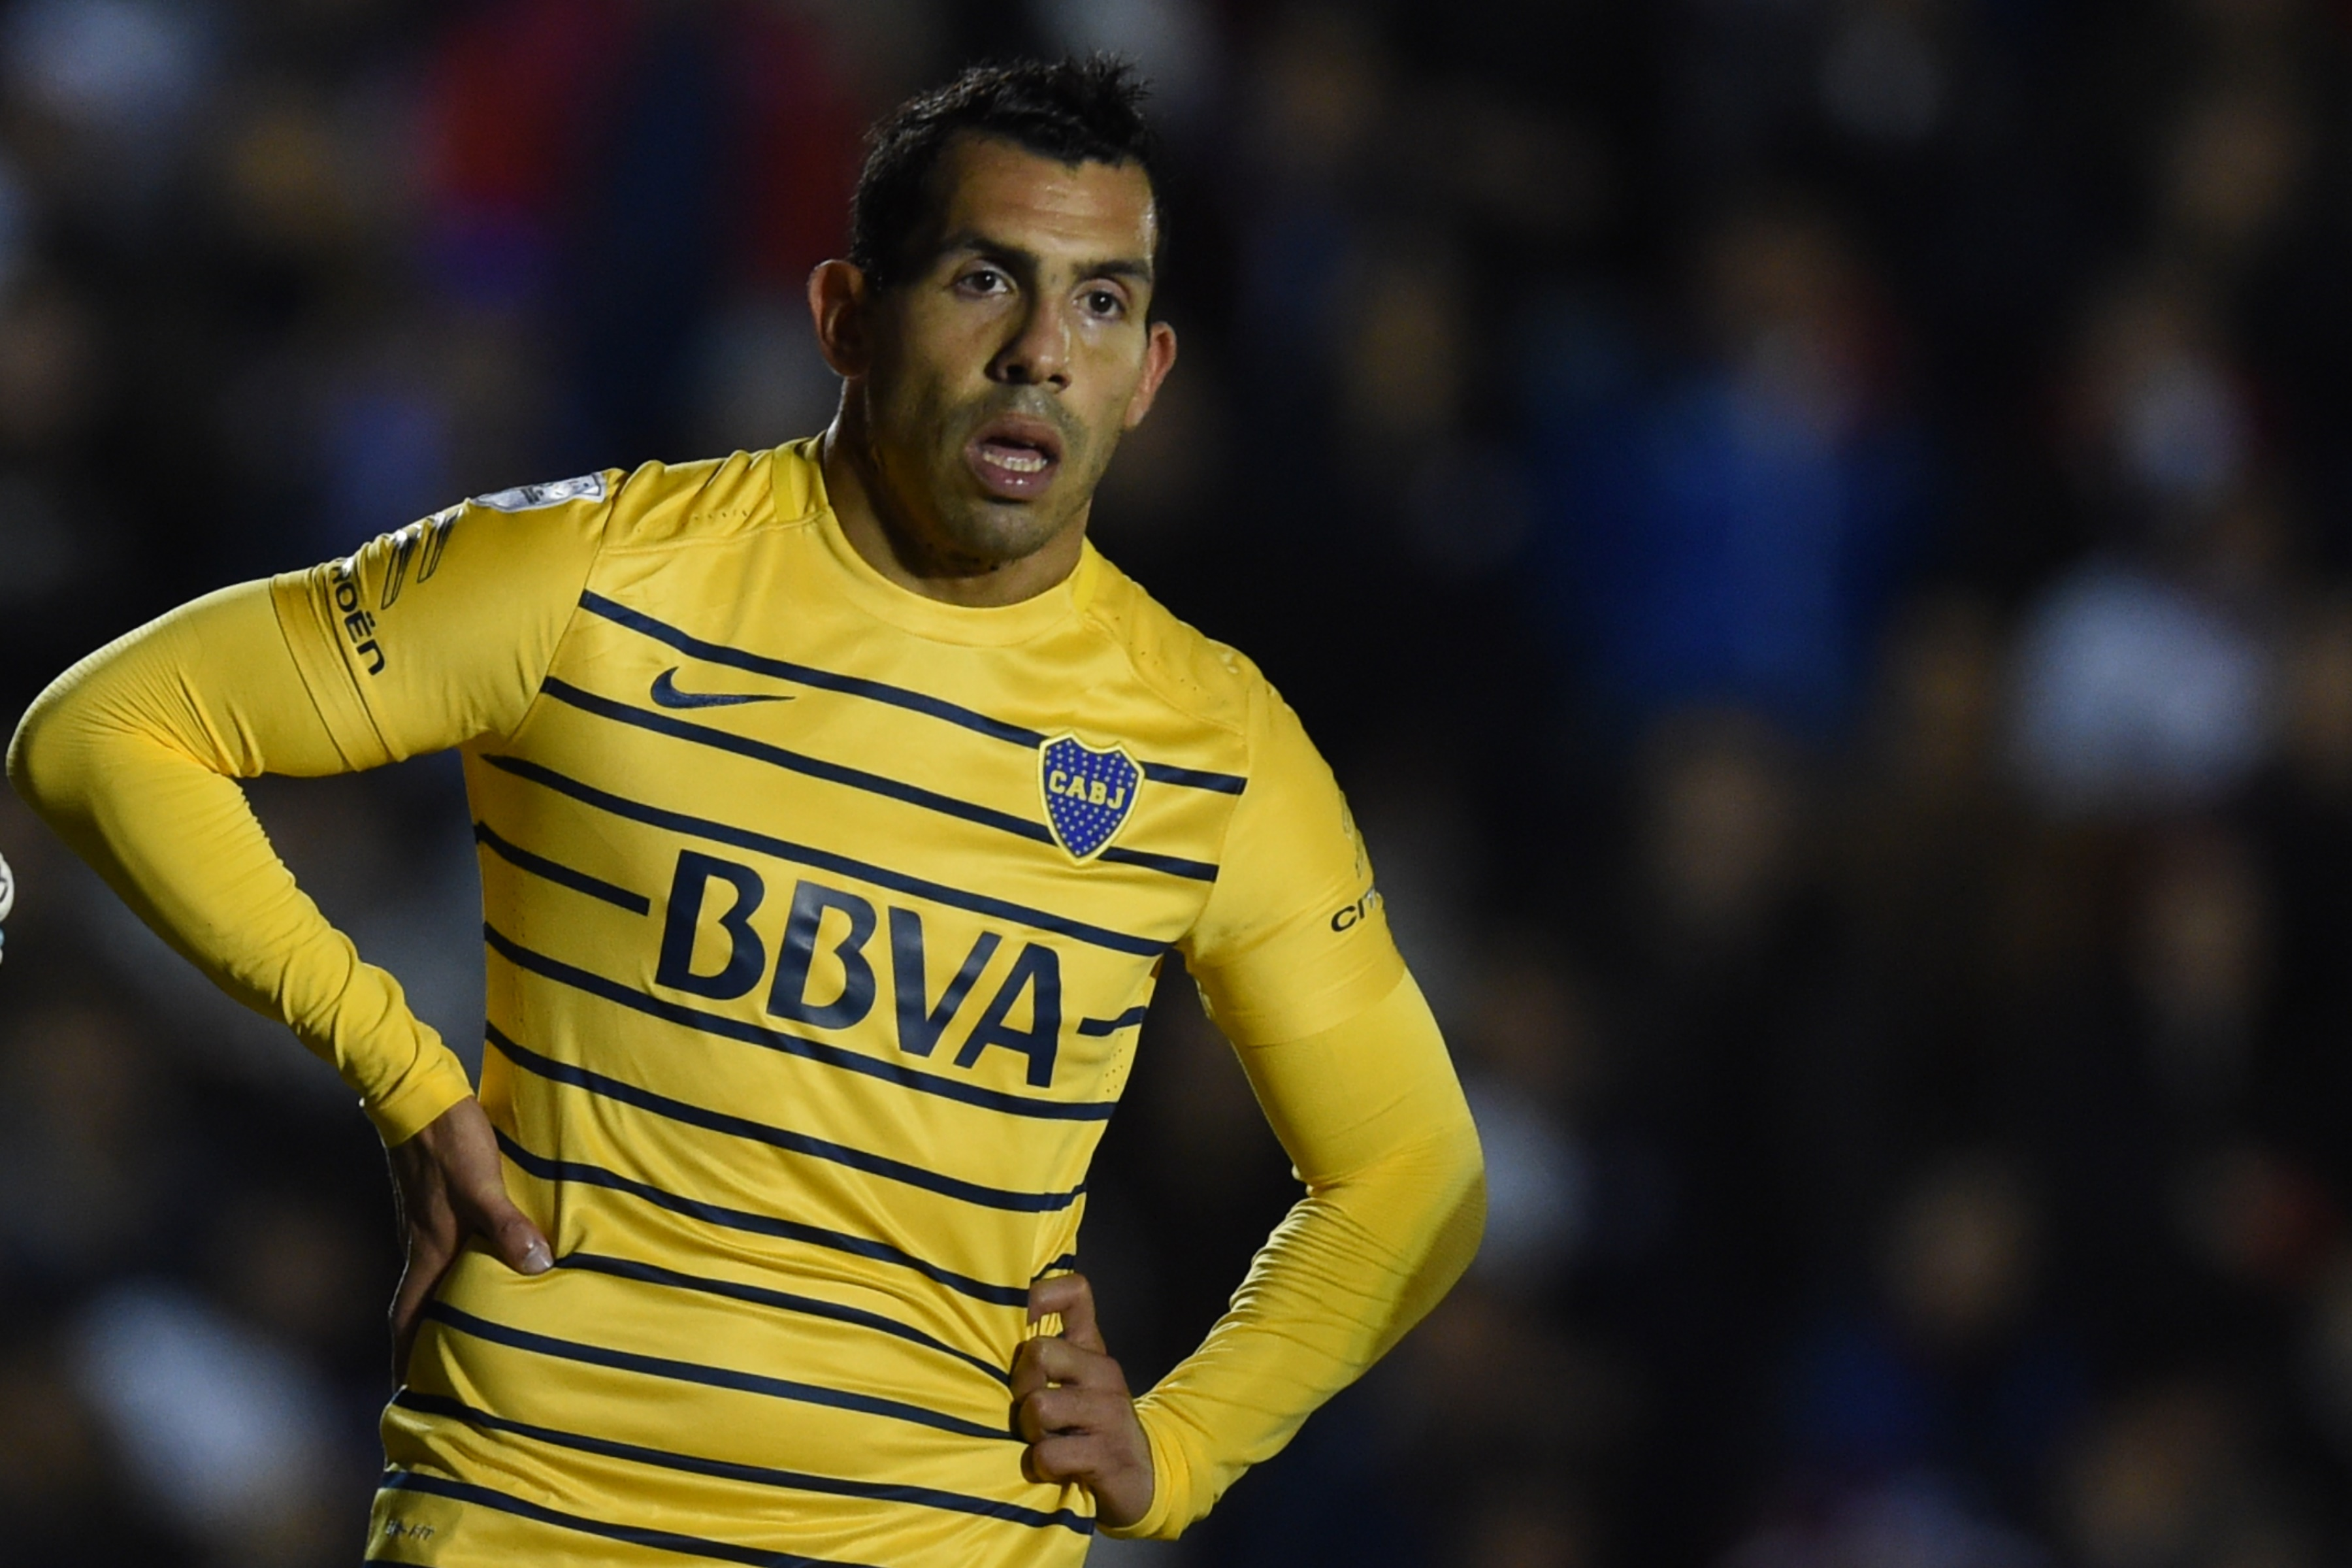 Carlos Tevez confirms Chelsea are trying to sign him